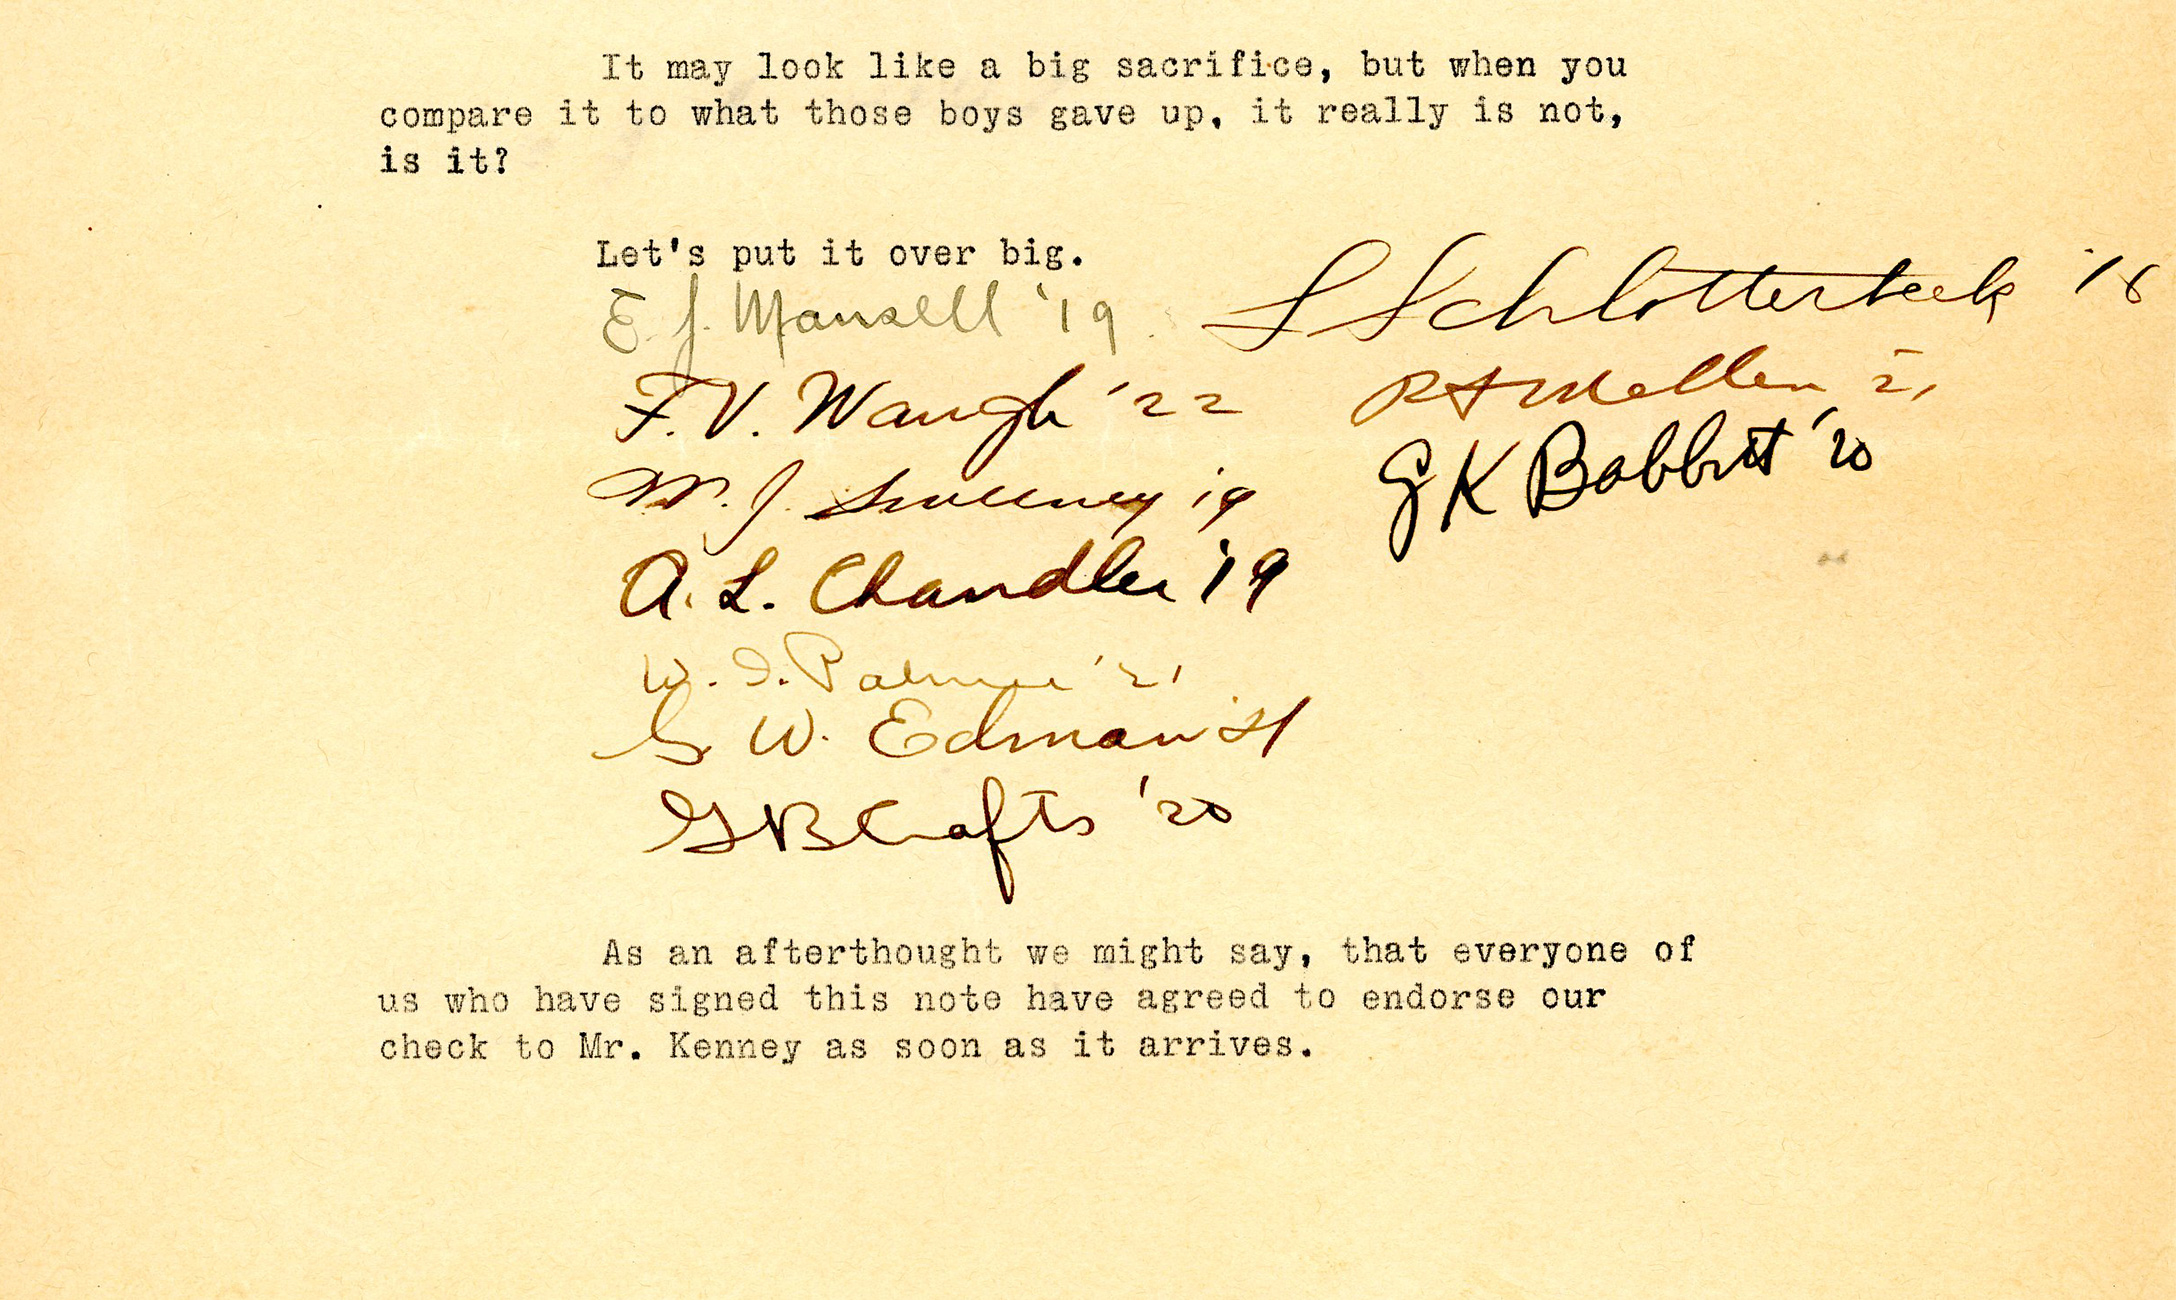 A fundraising letter with multiple signatures at the bottom.